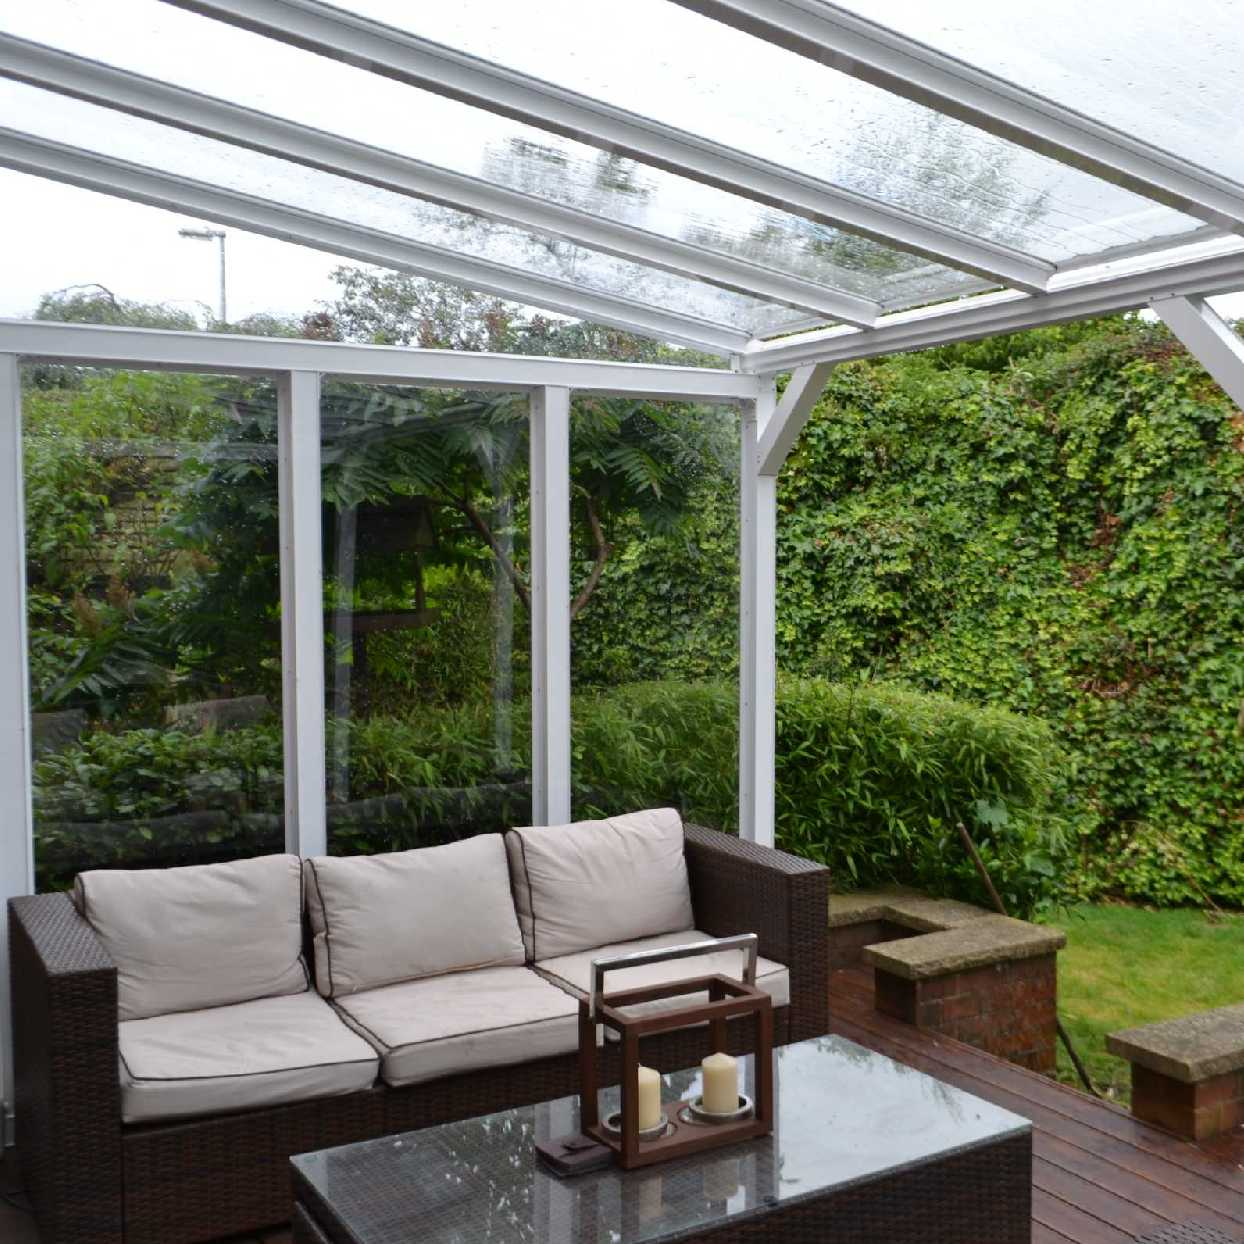 Great selection of Omega Smart Lean-To Canopy with 16mm Polycarbonate Glazing - 7.4m (W) x 2.5m (P), (4) Supporting Posts